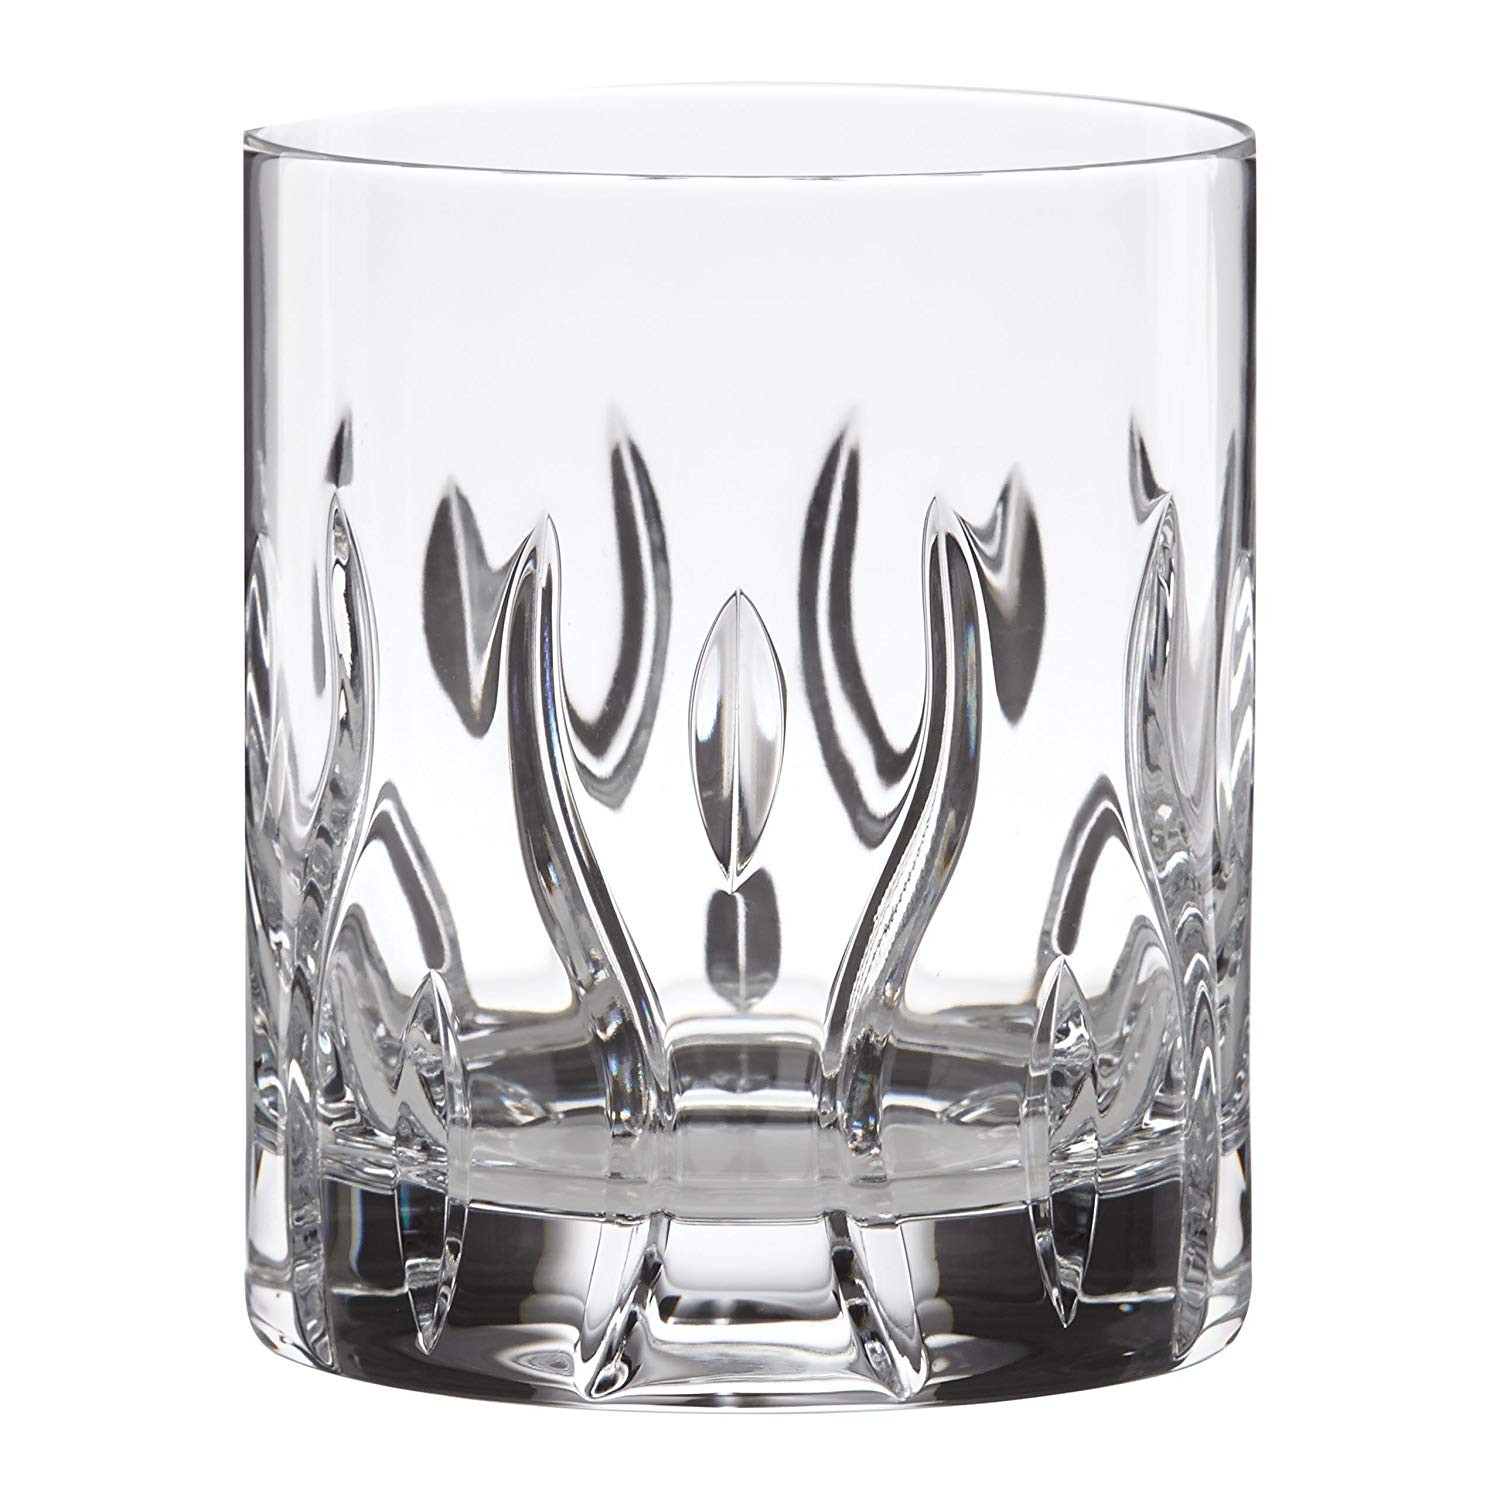 lenox fine crystal vase of amazon com lenox 857141 irish spring darcy double old fashioned regarding amazon com lenox 857141 irish spring darcy double old fashioned glasses set of 2 clear ol